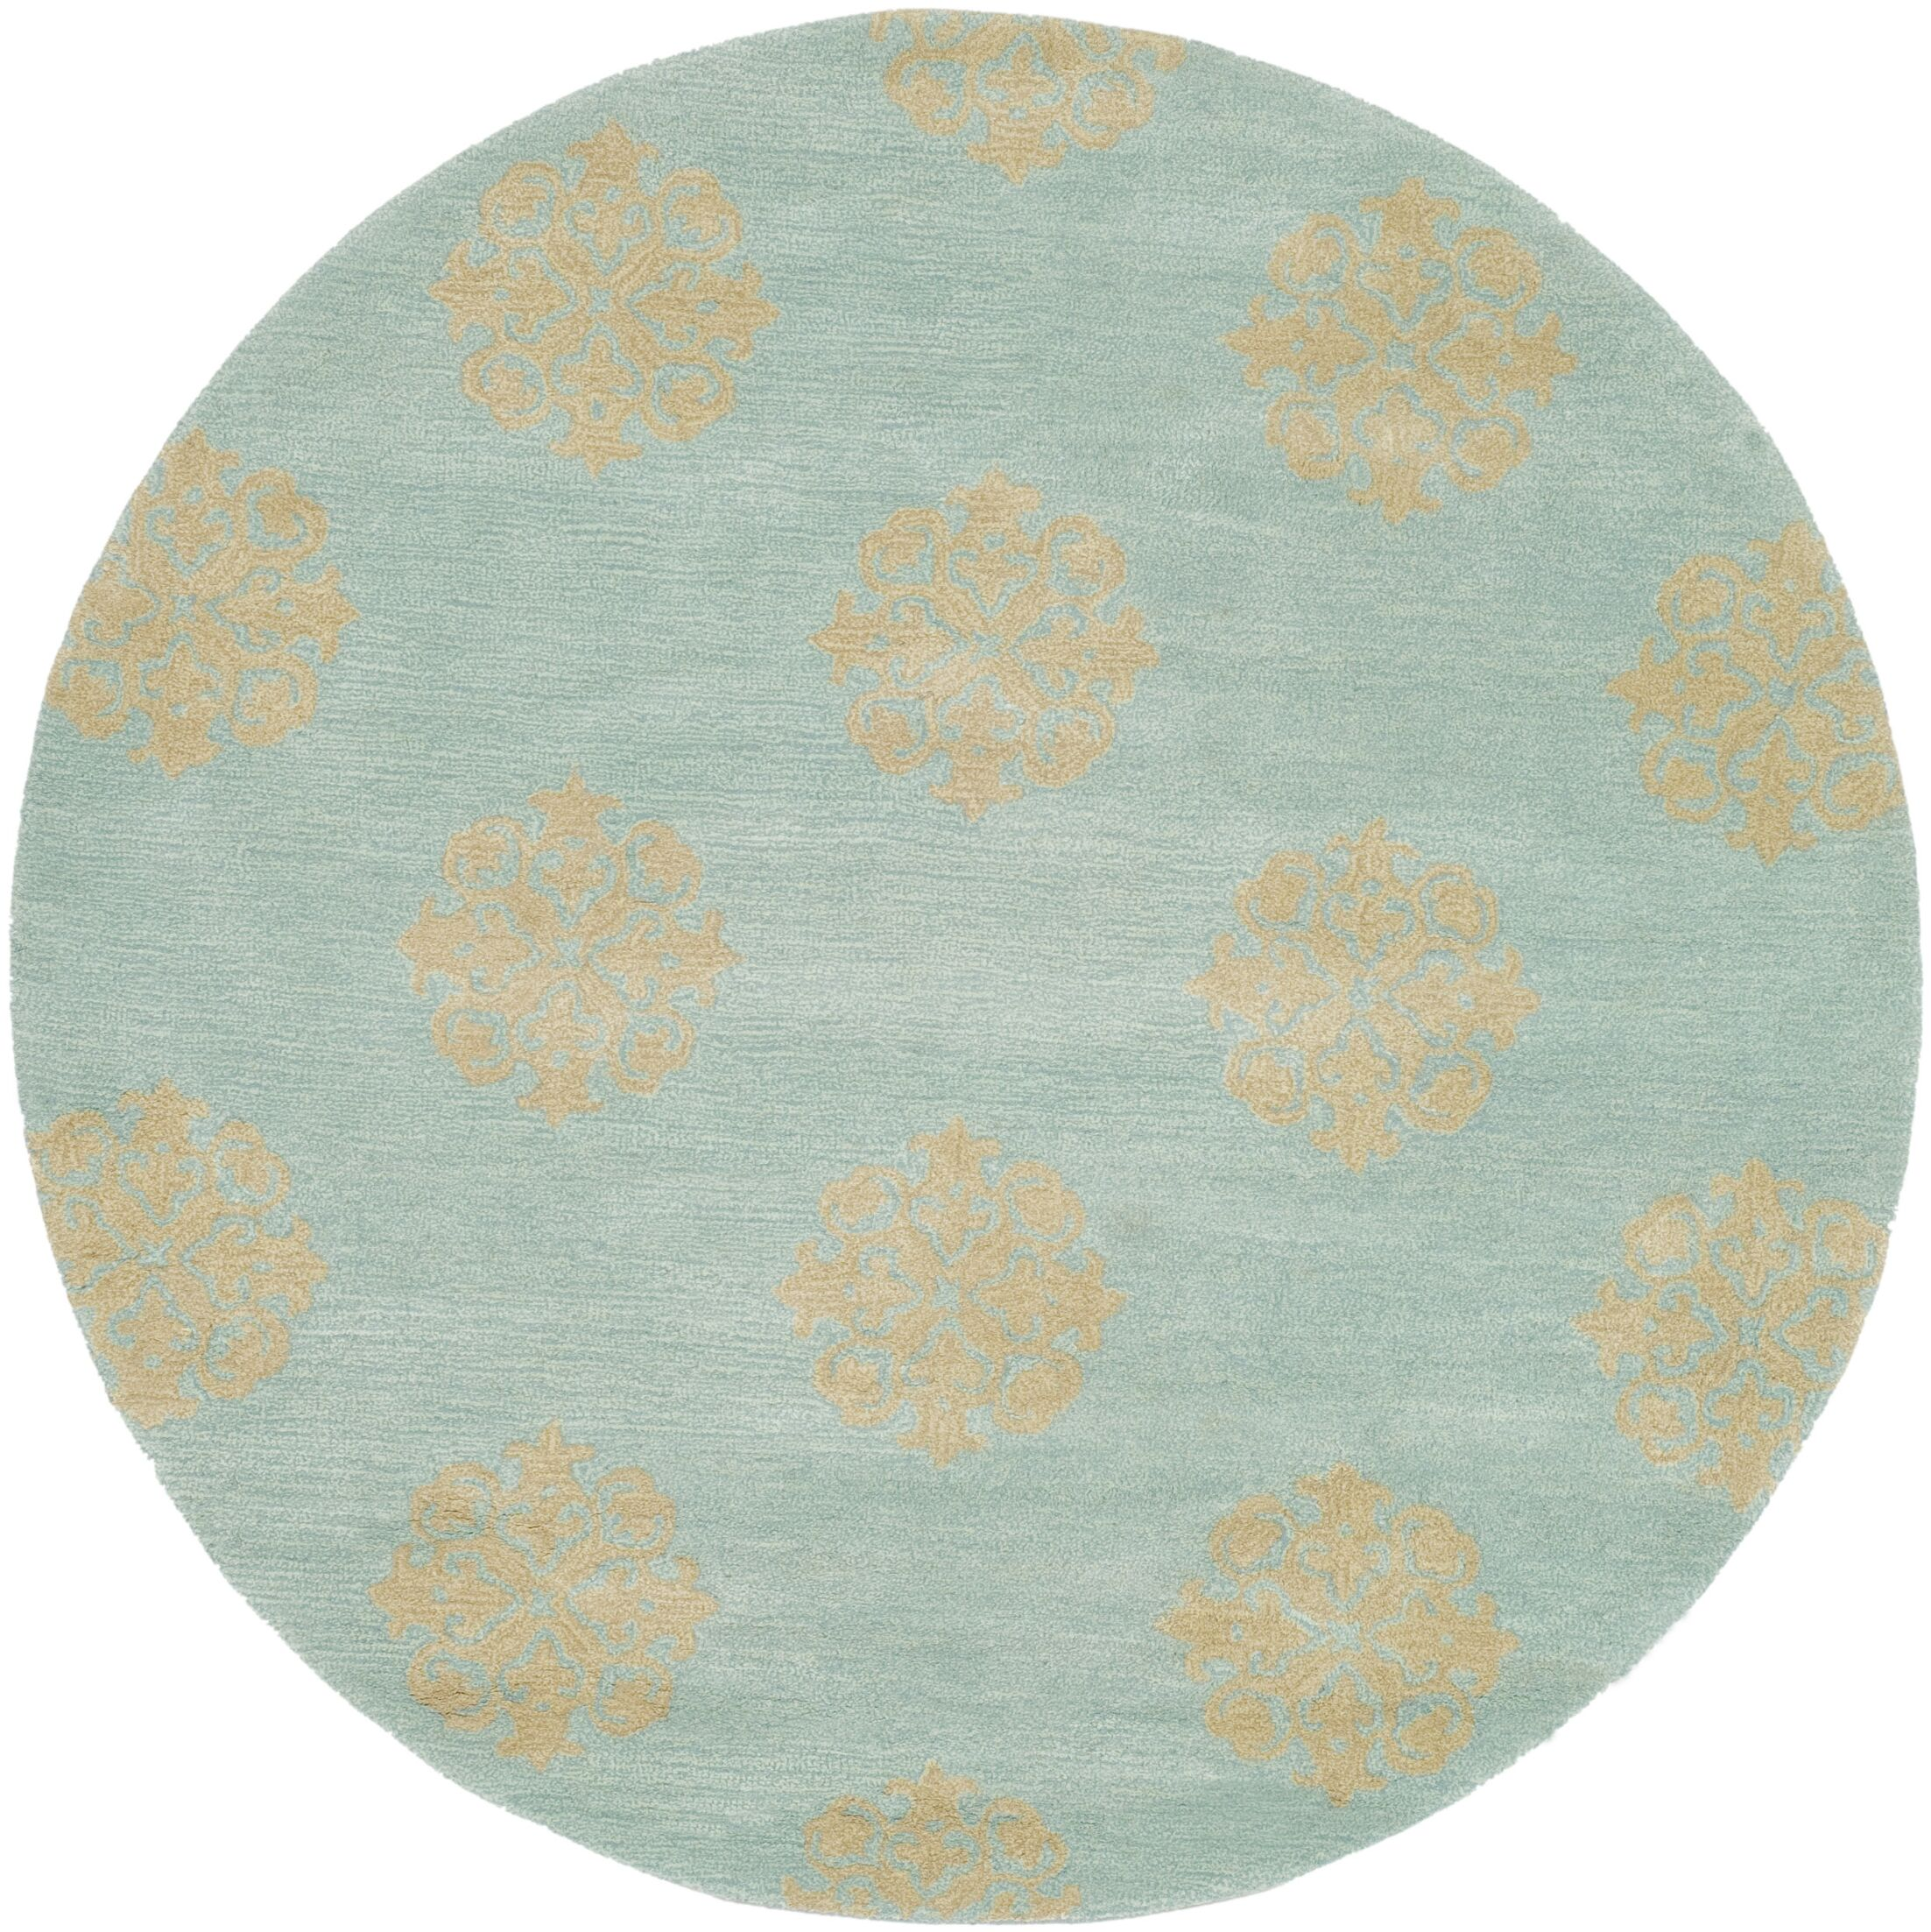 Backstrom Hand-Tufted Turquoise Area Rug Rug Size: Rectangle 9'6